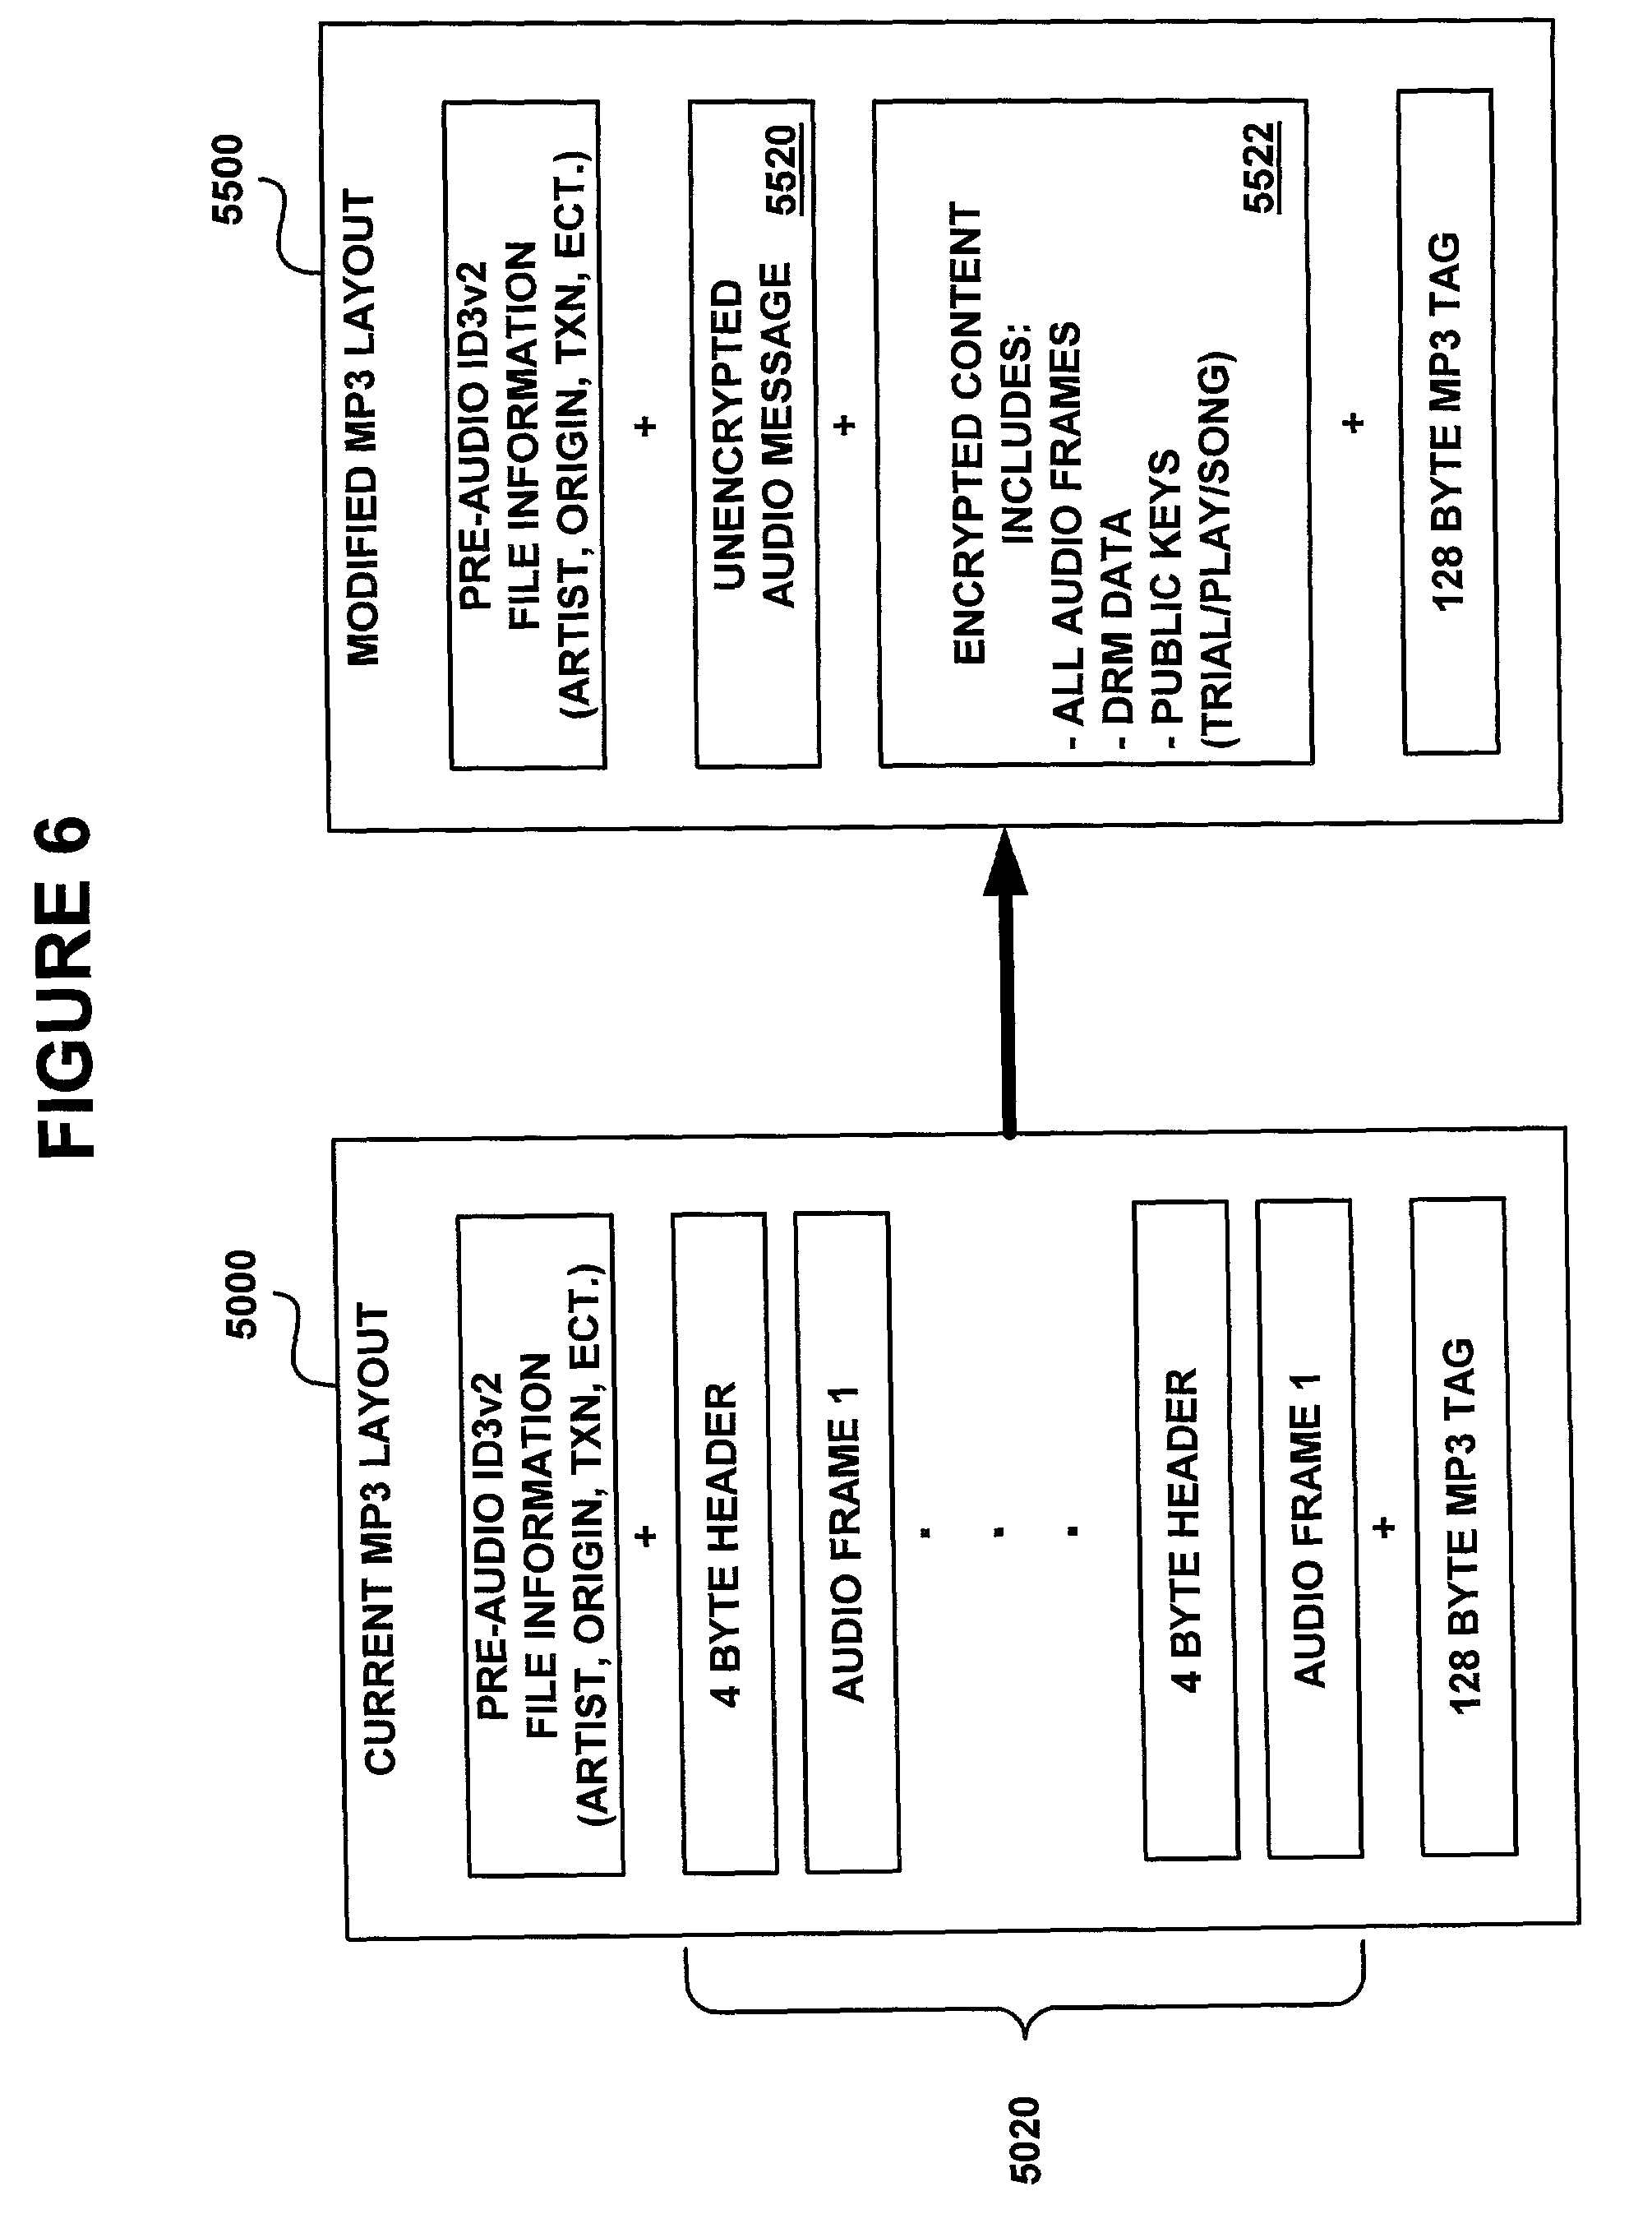 App Invoice Patent Us  Secured Content Delivery System And Method  To Acknowledge Receipt with Yahoo Mail Read Receipt Patent Drawing Making Fake Receipts Word